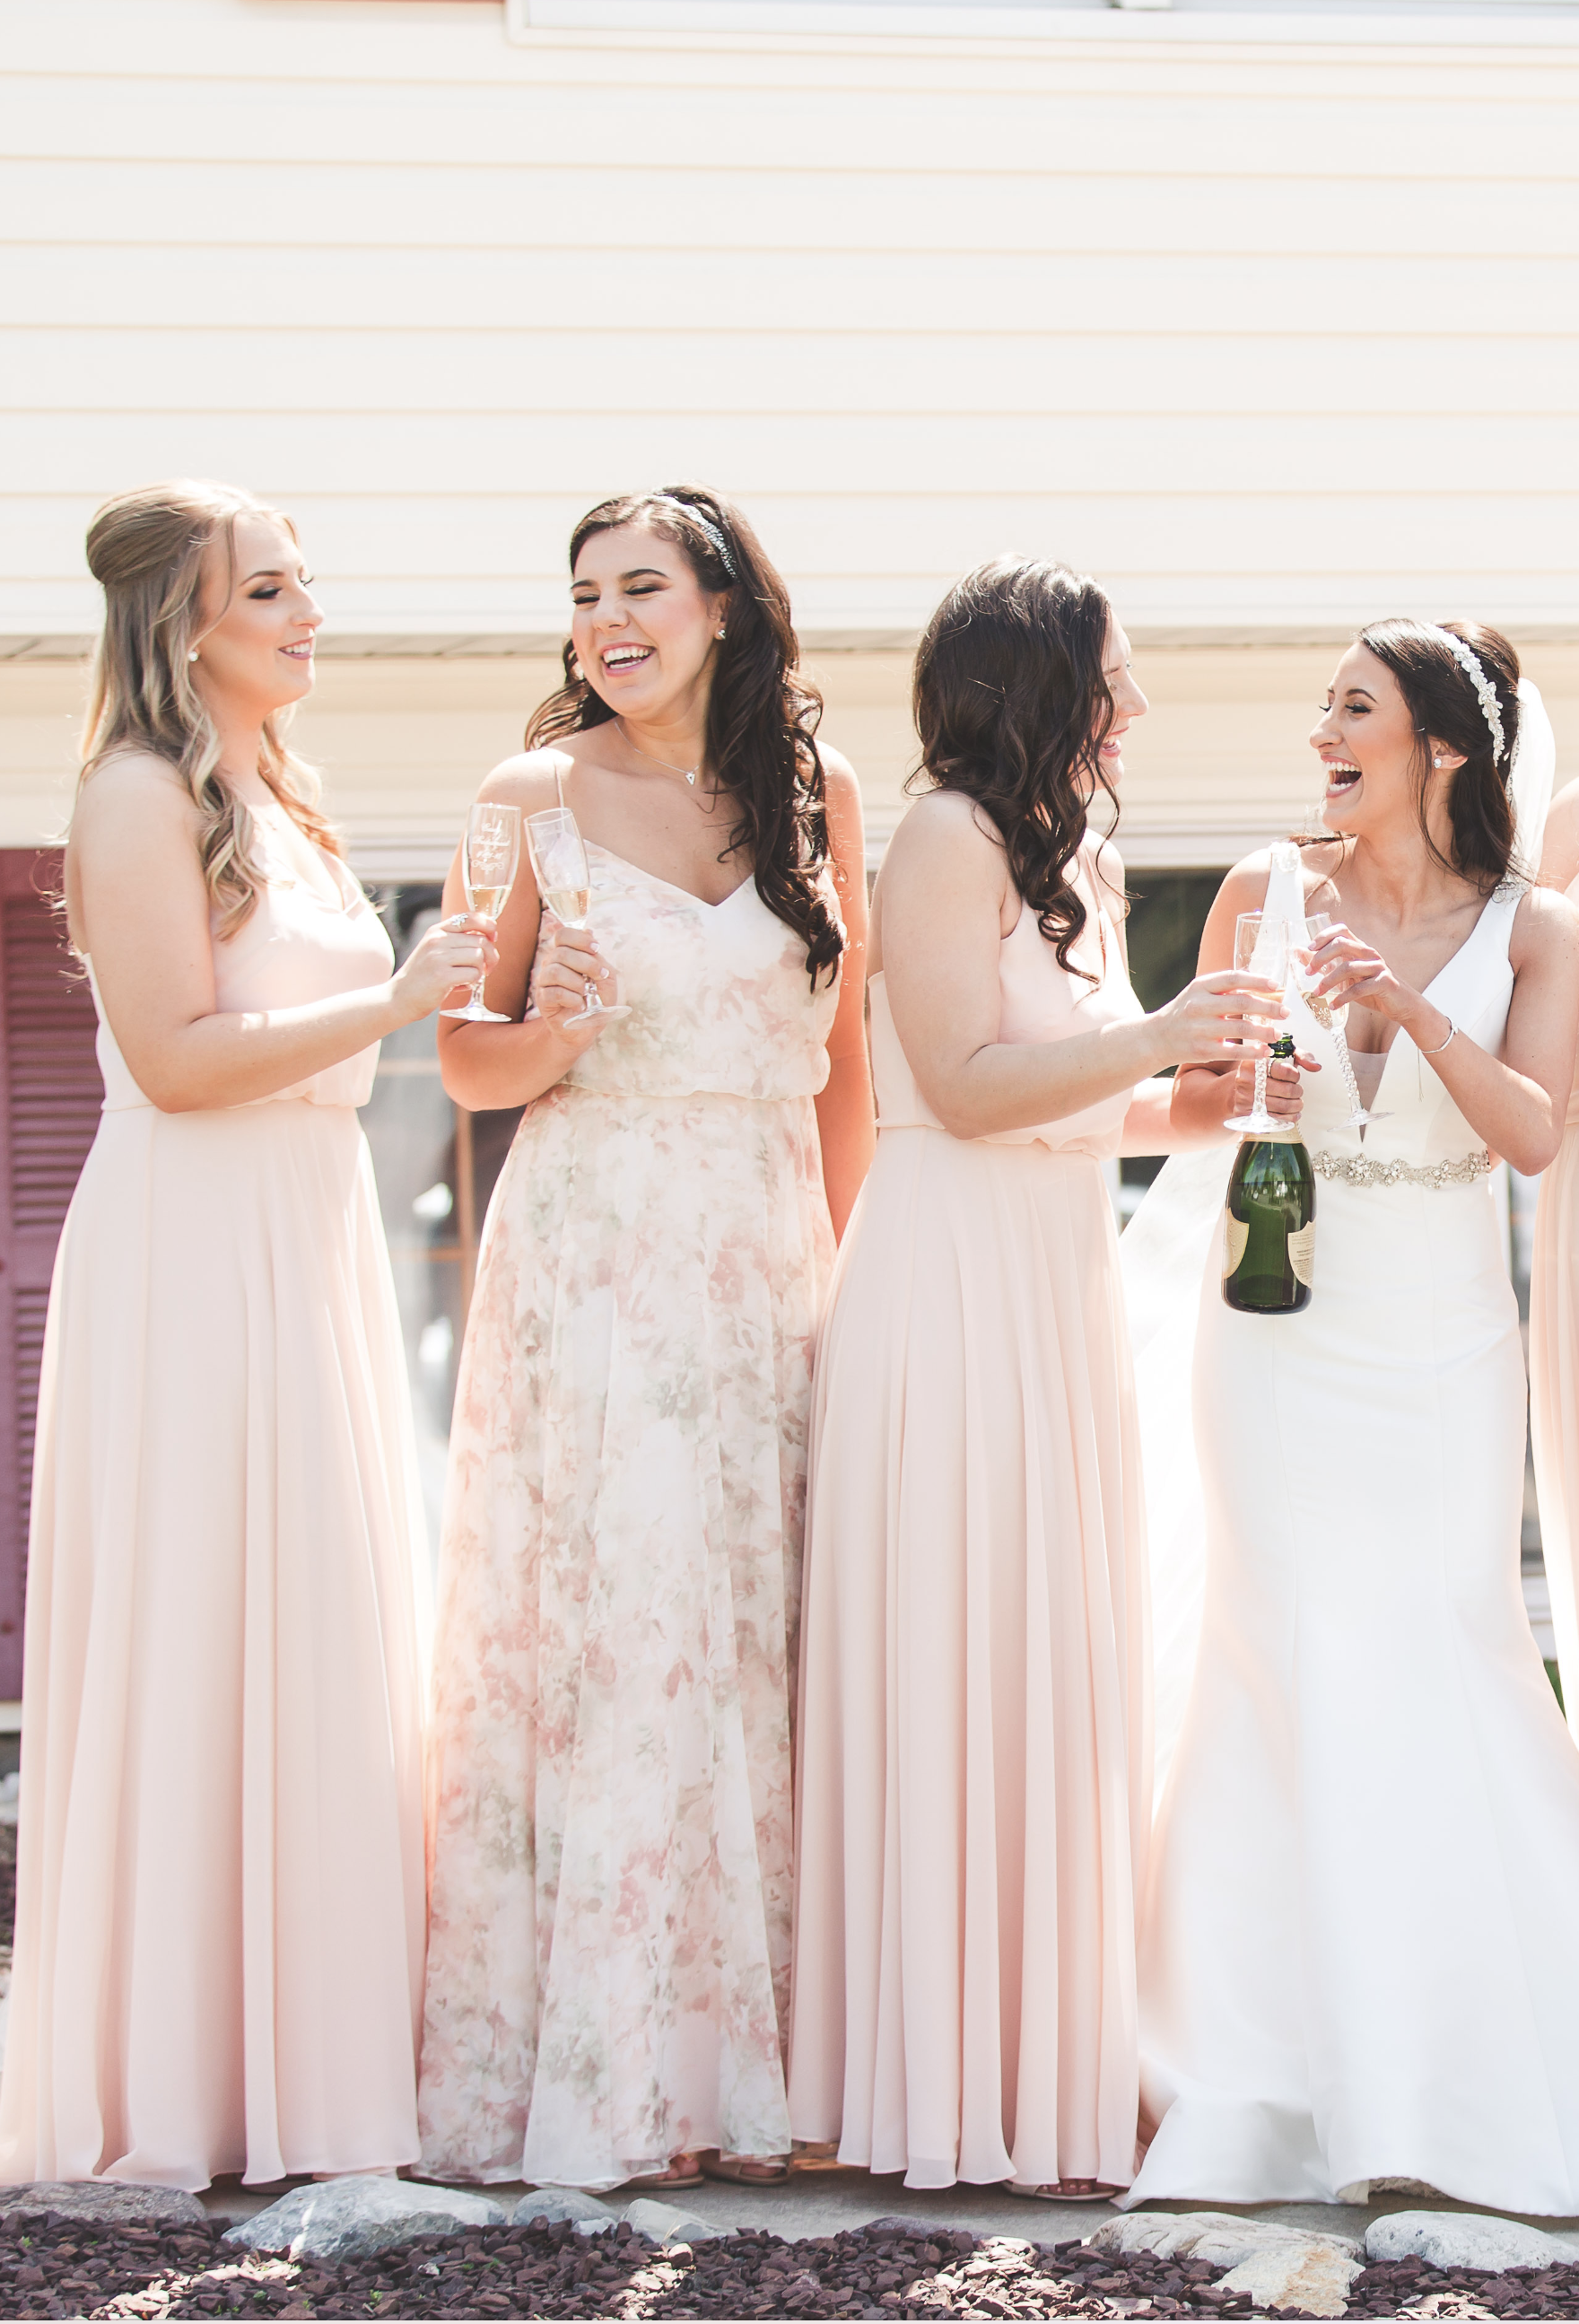 b0f4162dbb54 Jenny Yoo mismatched Bridesmaids, shown in our 'Inesse' Dress in Watercolor  Blush print. This long chiffon dress is the perfect bridal party dress for  a ...